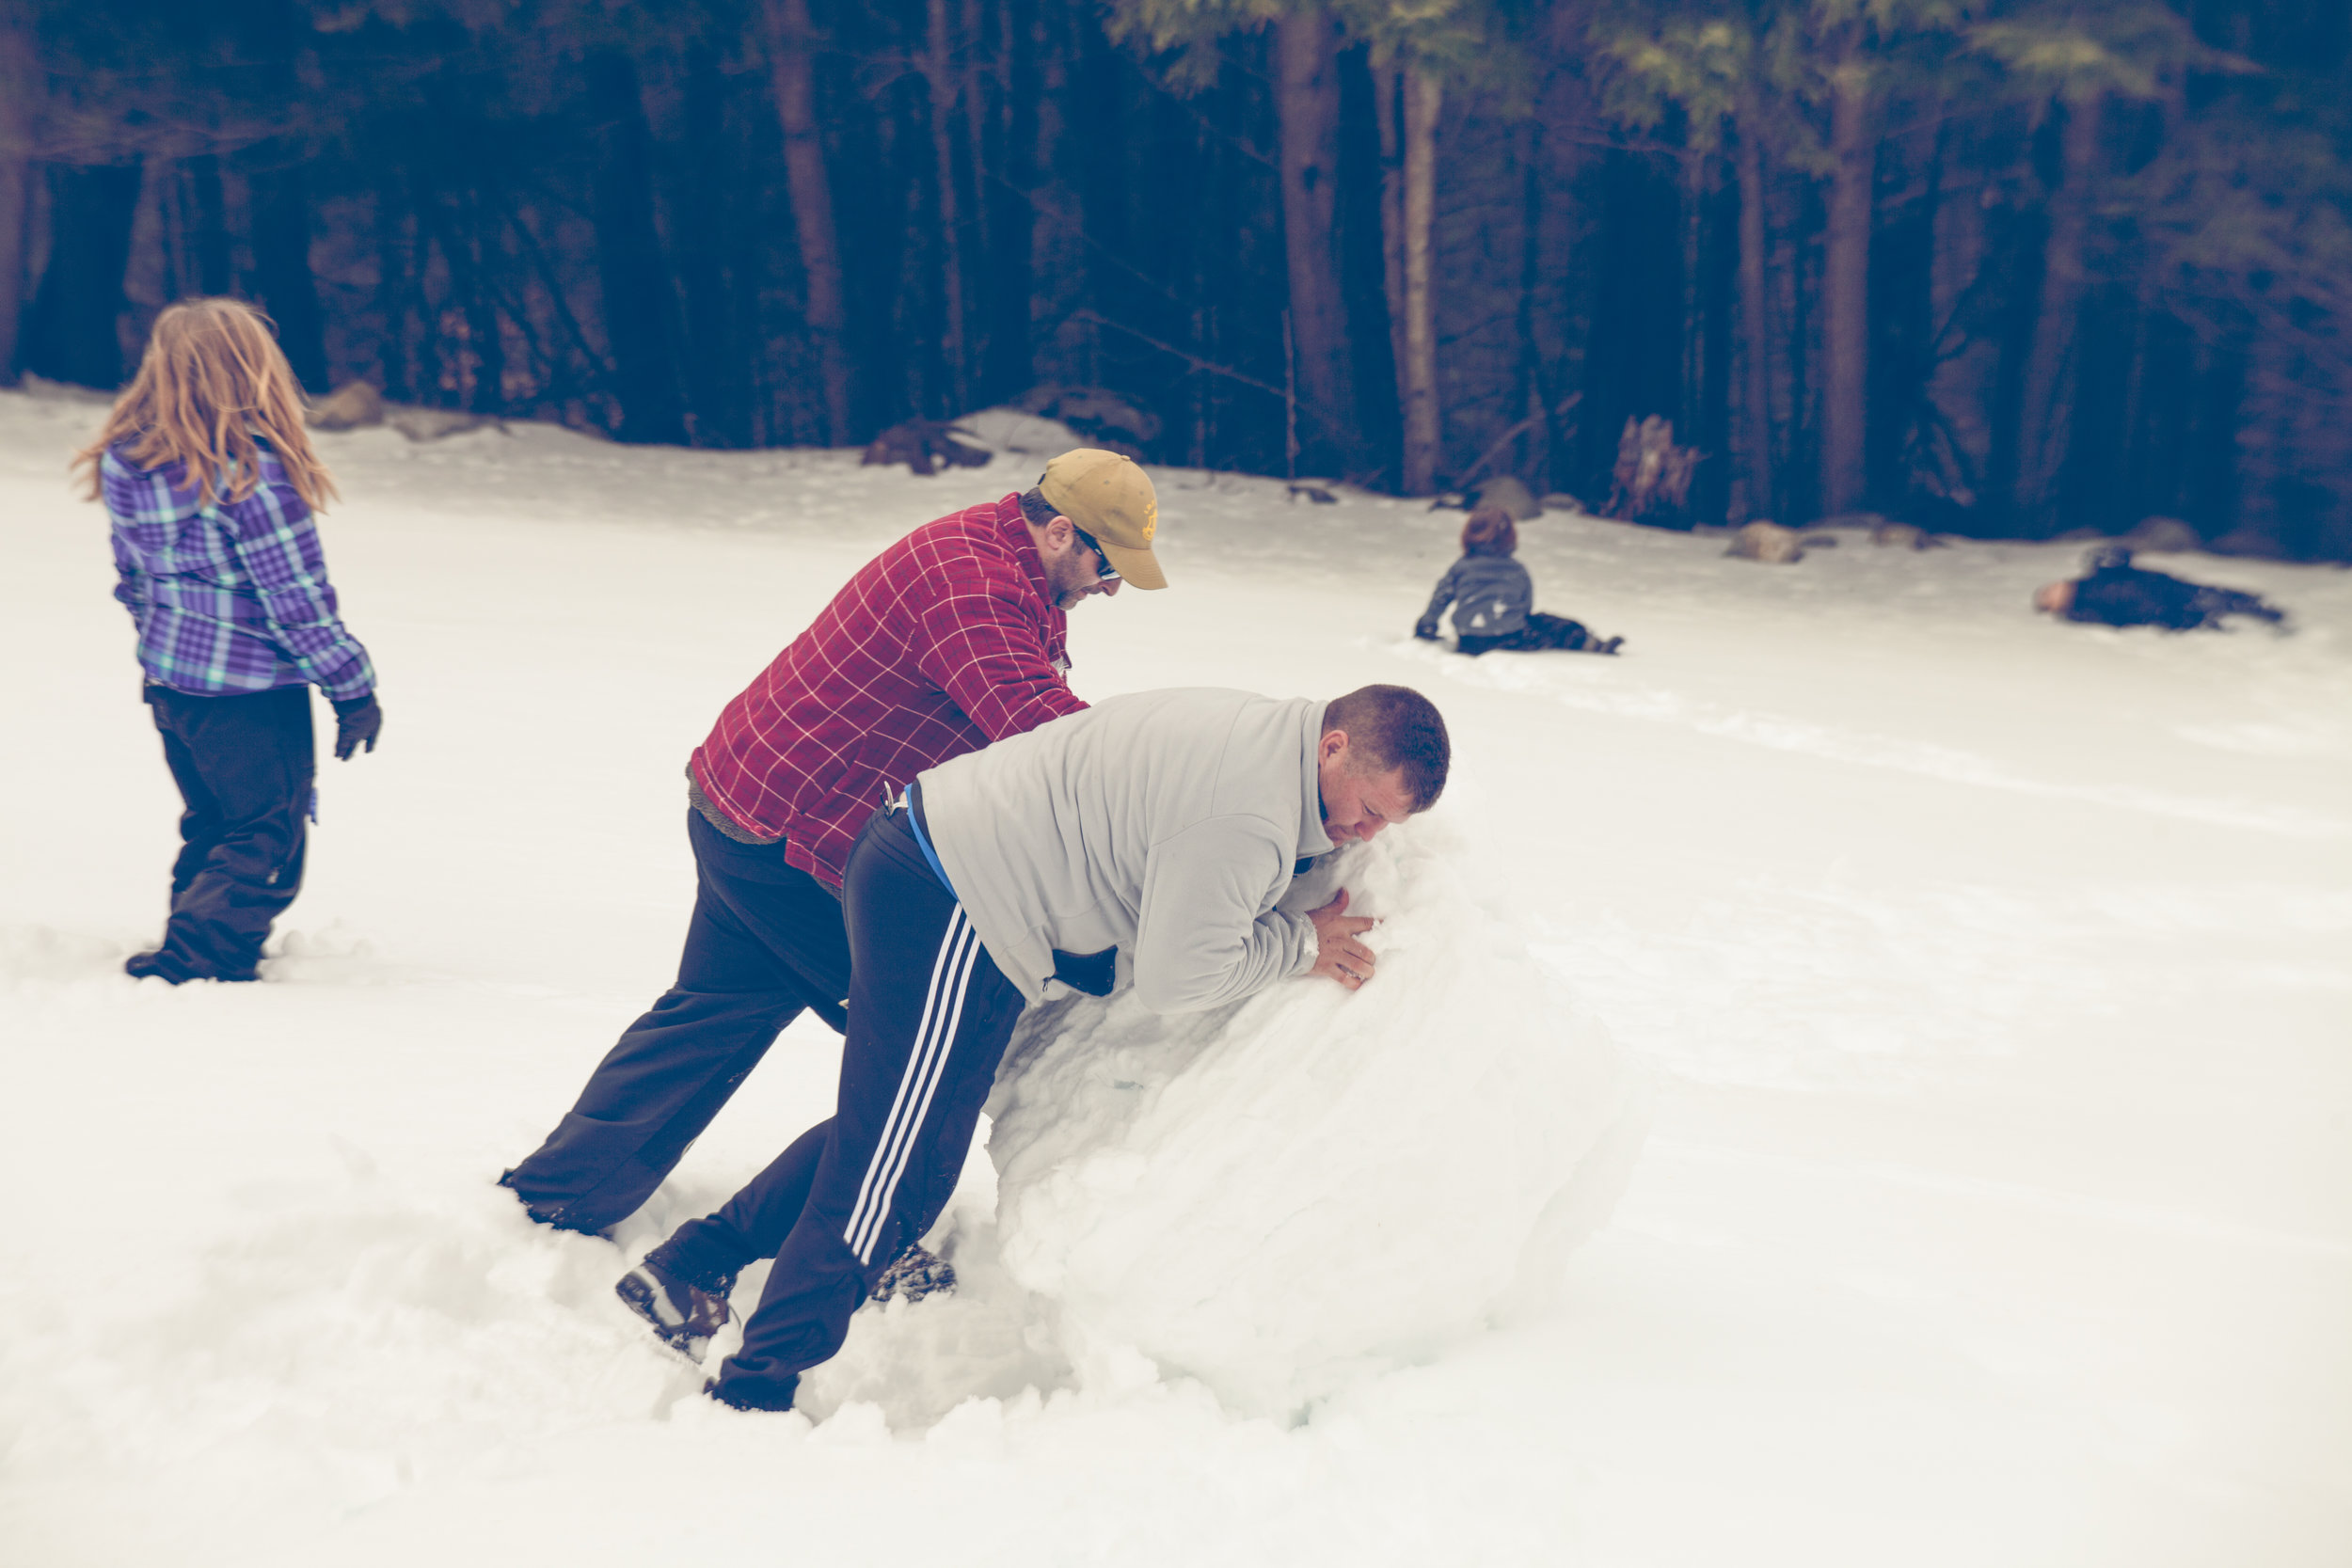 The dad's making a snow man, while the boys are rolling down the snow covered hill.